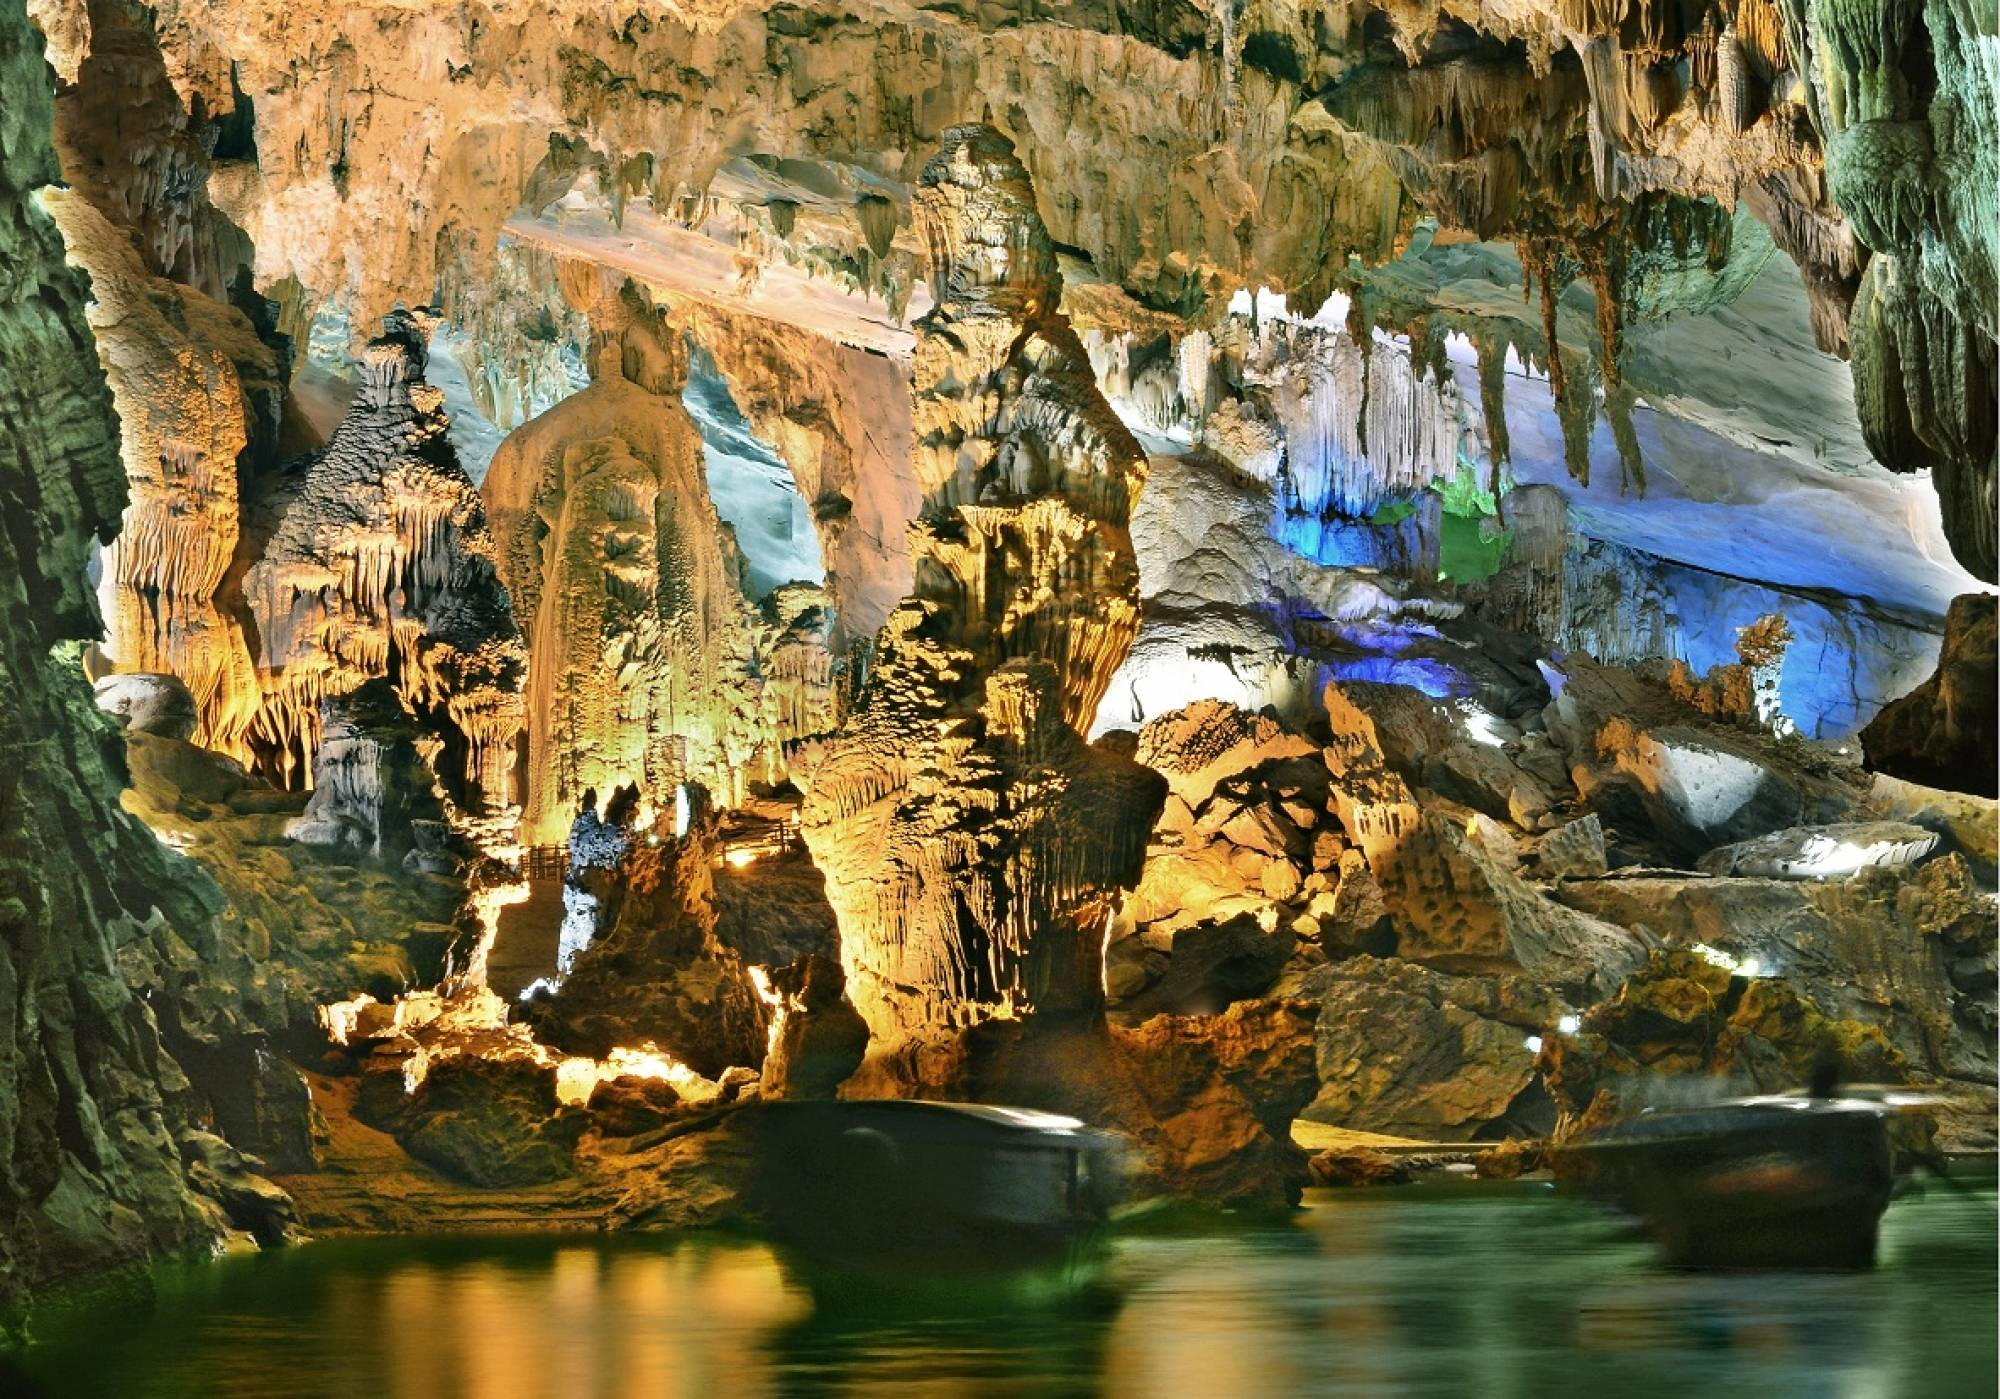 DAILY GROUP TOUR: PHONG NHA CAVE AND PARADISE CAVE 1 DAY